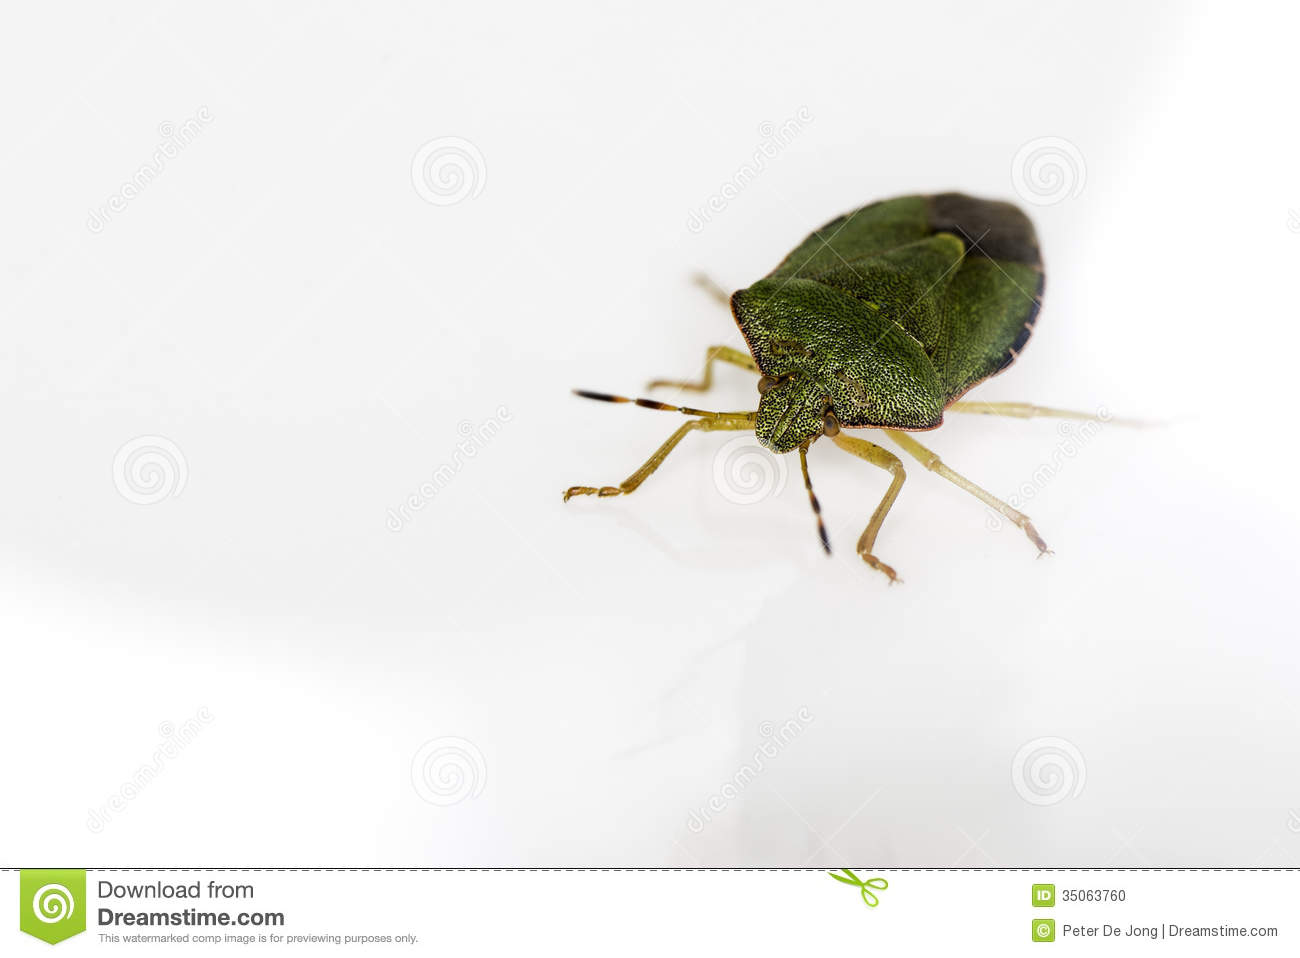 A Green Beetle (Palomena Prasina) On White. Stock Photo.